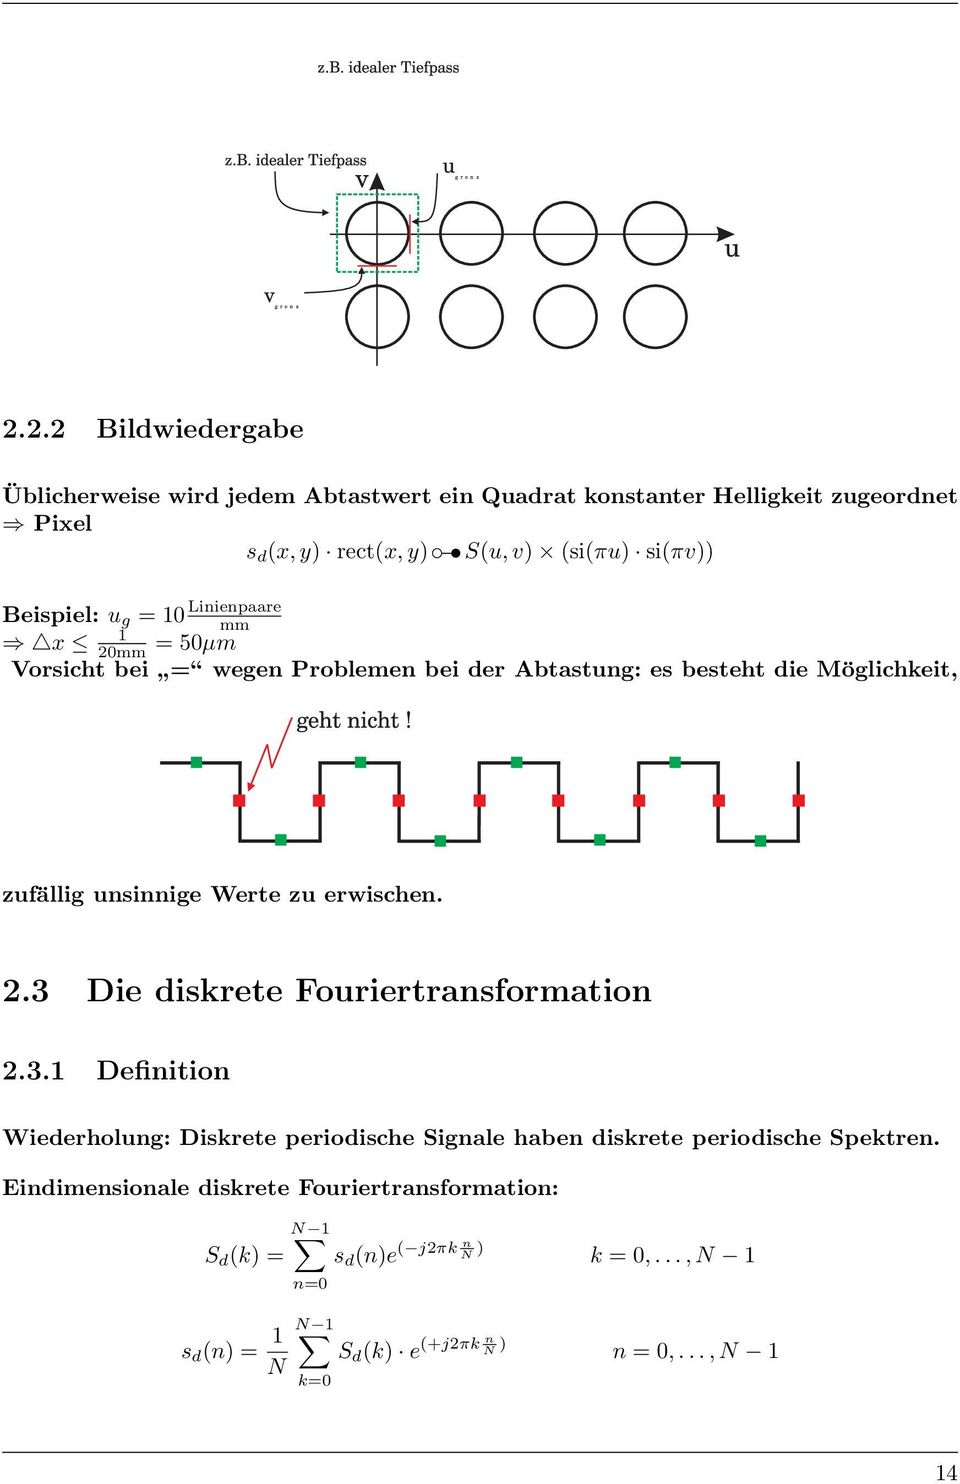 diskrete fourier transformation pdf